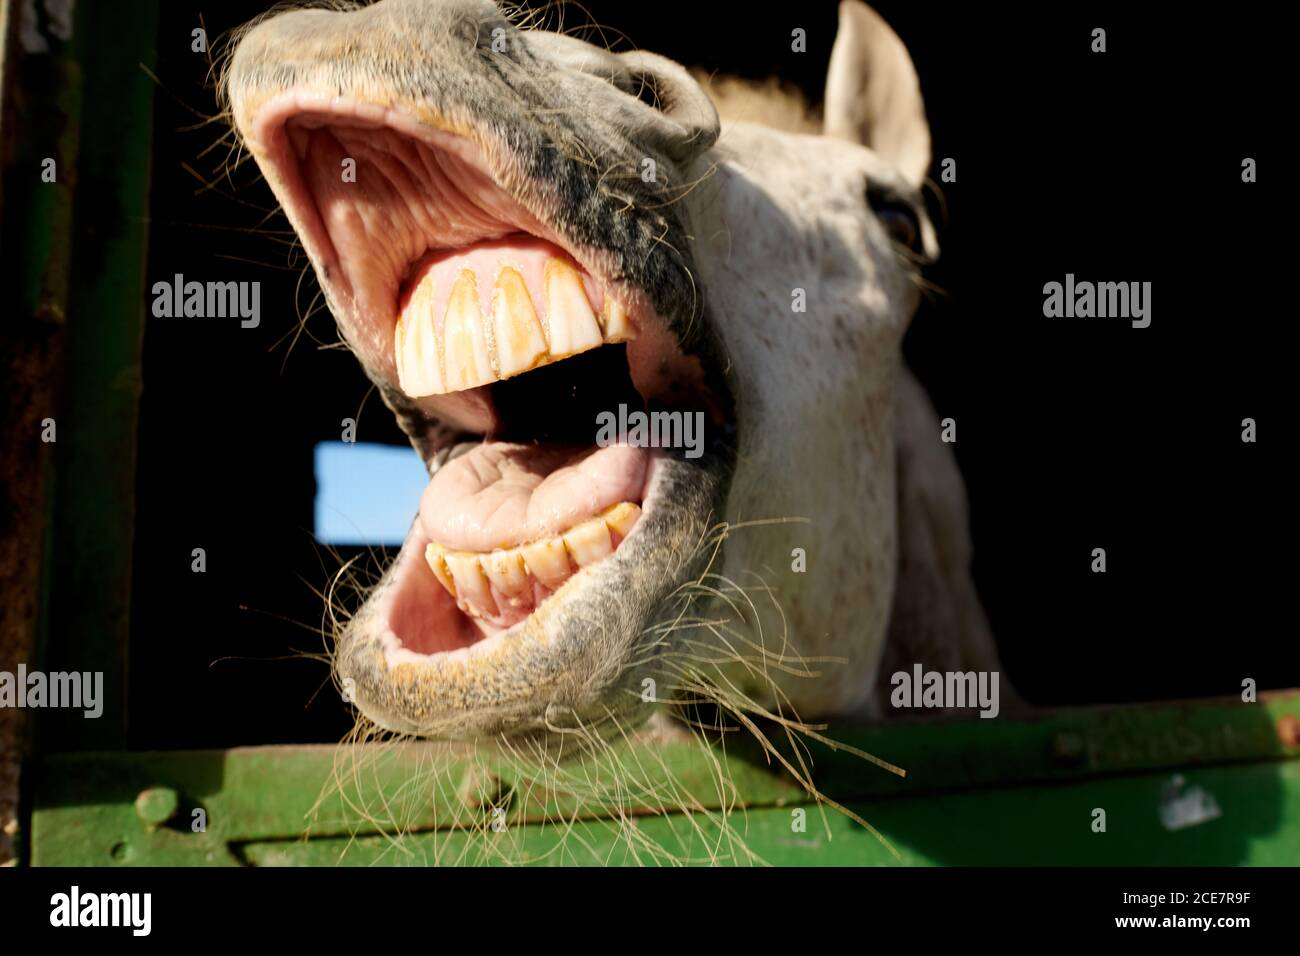 Laughing Horse Funny High Resolution Stock Photography And Images Alamy